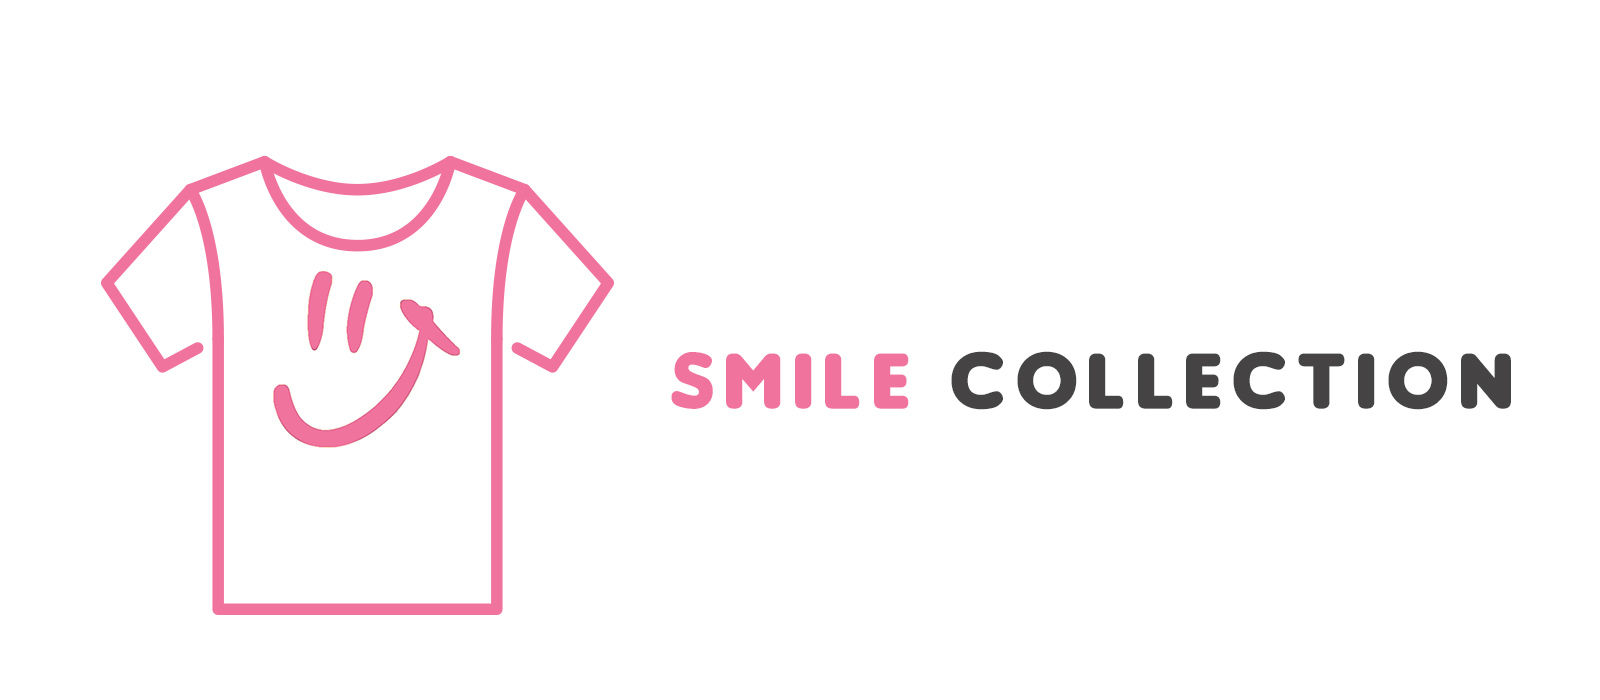 Timan - Smile Collection